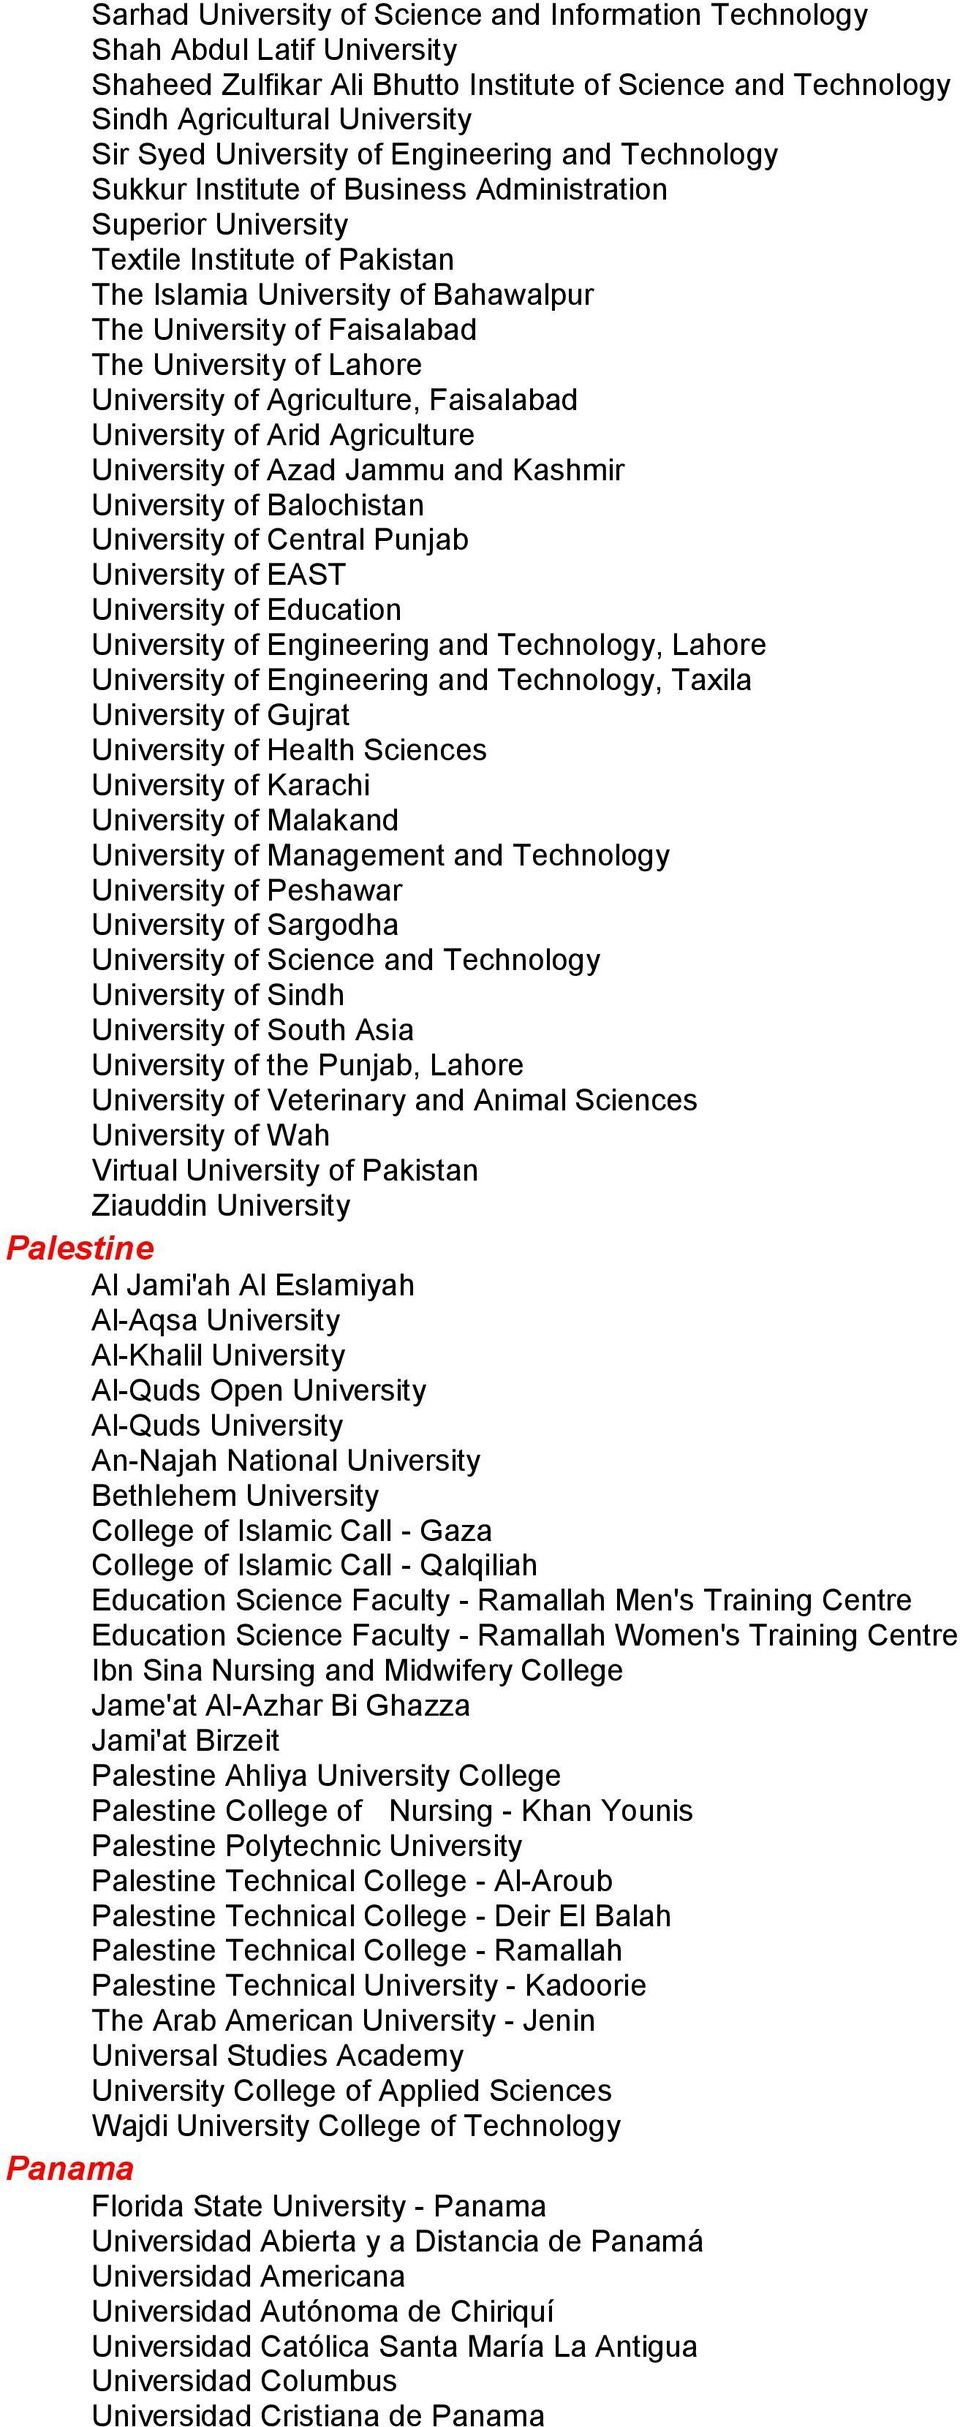 University of Lahore University of Agriculture, Faisalabad University of Arid Agriculture University of Azad Jammu and Kashmir University of Balochistan University of Central Punjab University of